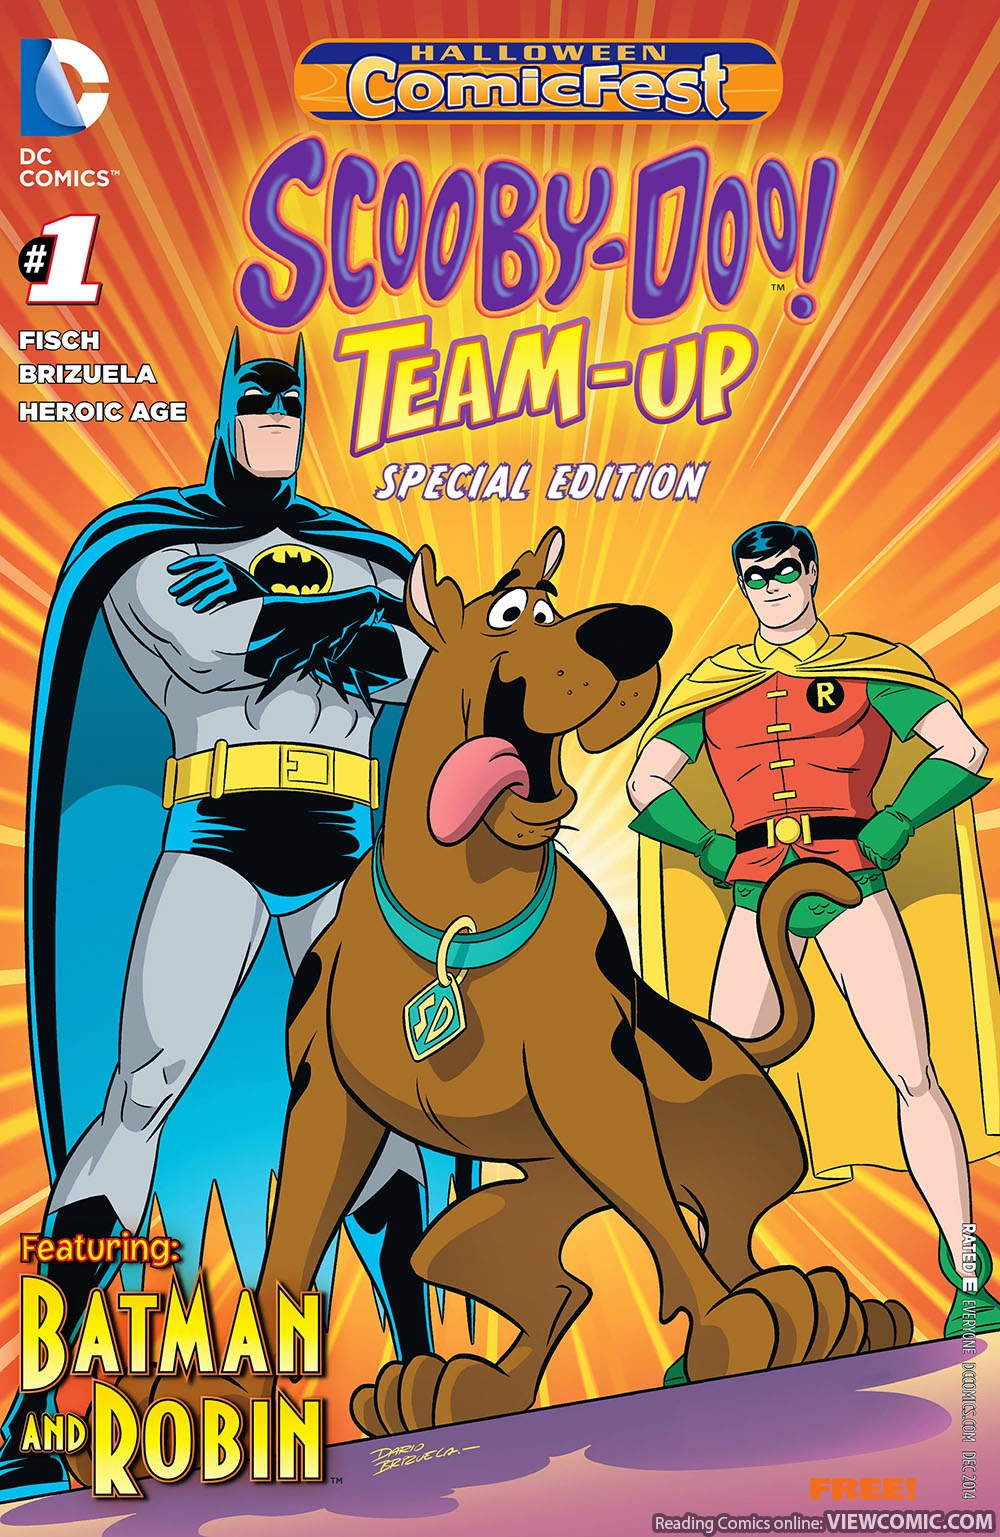 scooby-doo team up halloween special edition 001 (2014) | viewcomic